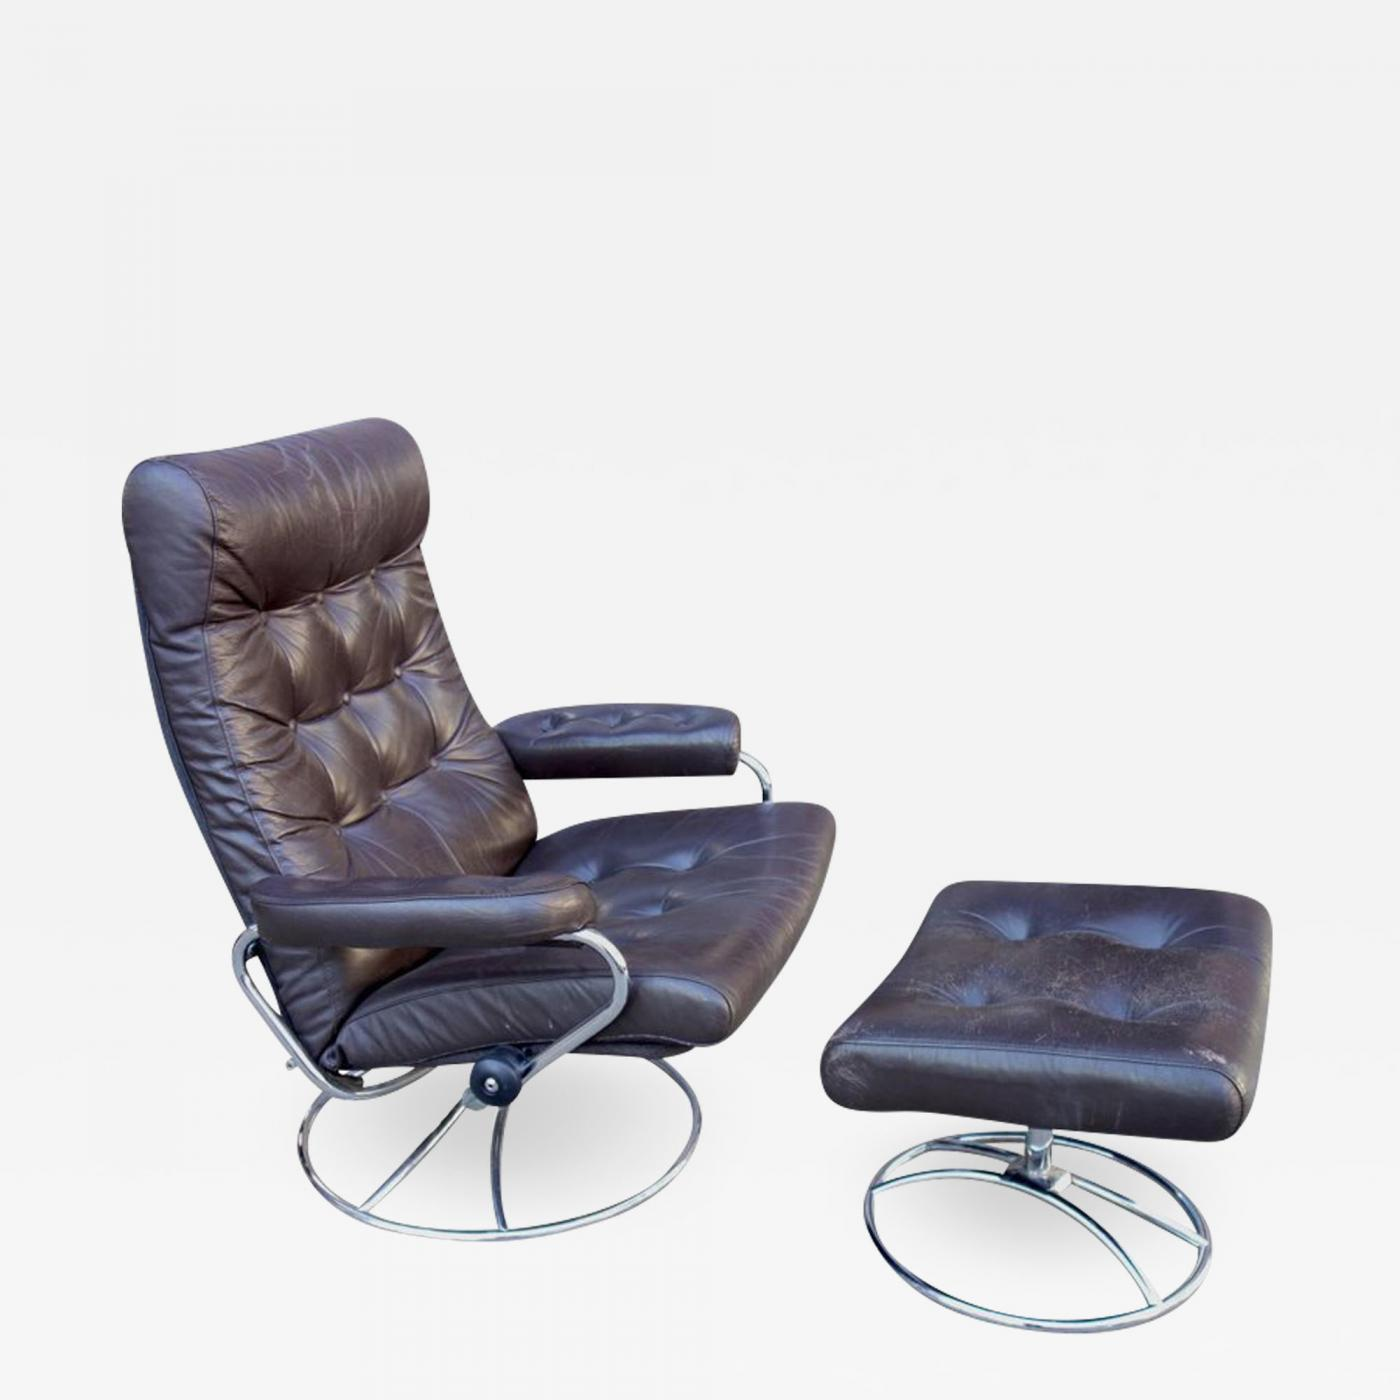 Ekornes Stressless Ekornes Stressless Midcentury Reclining Stressless Lounge Chair And Ottoman By Ekornes